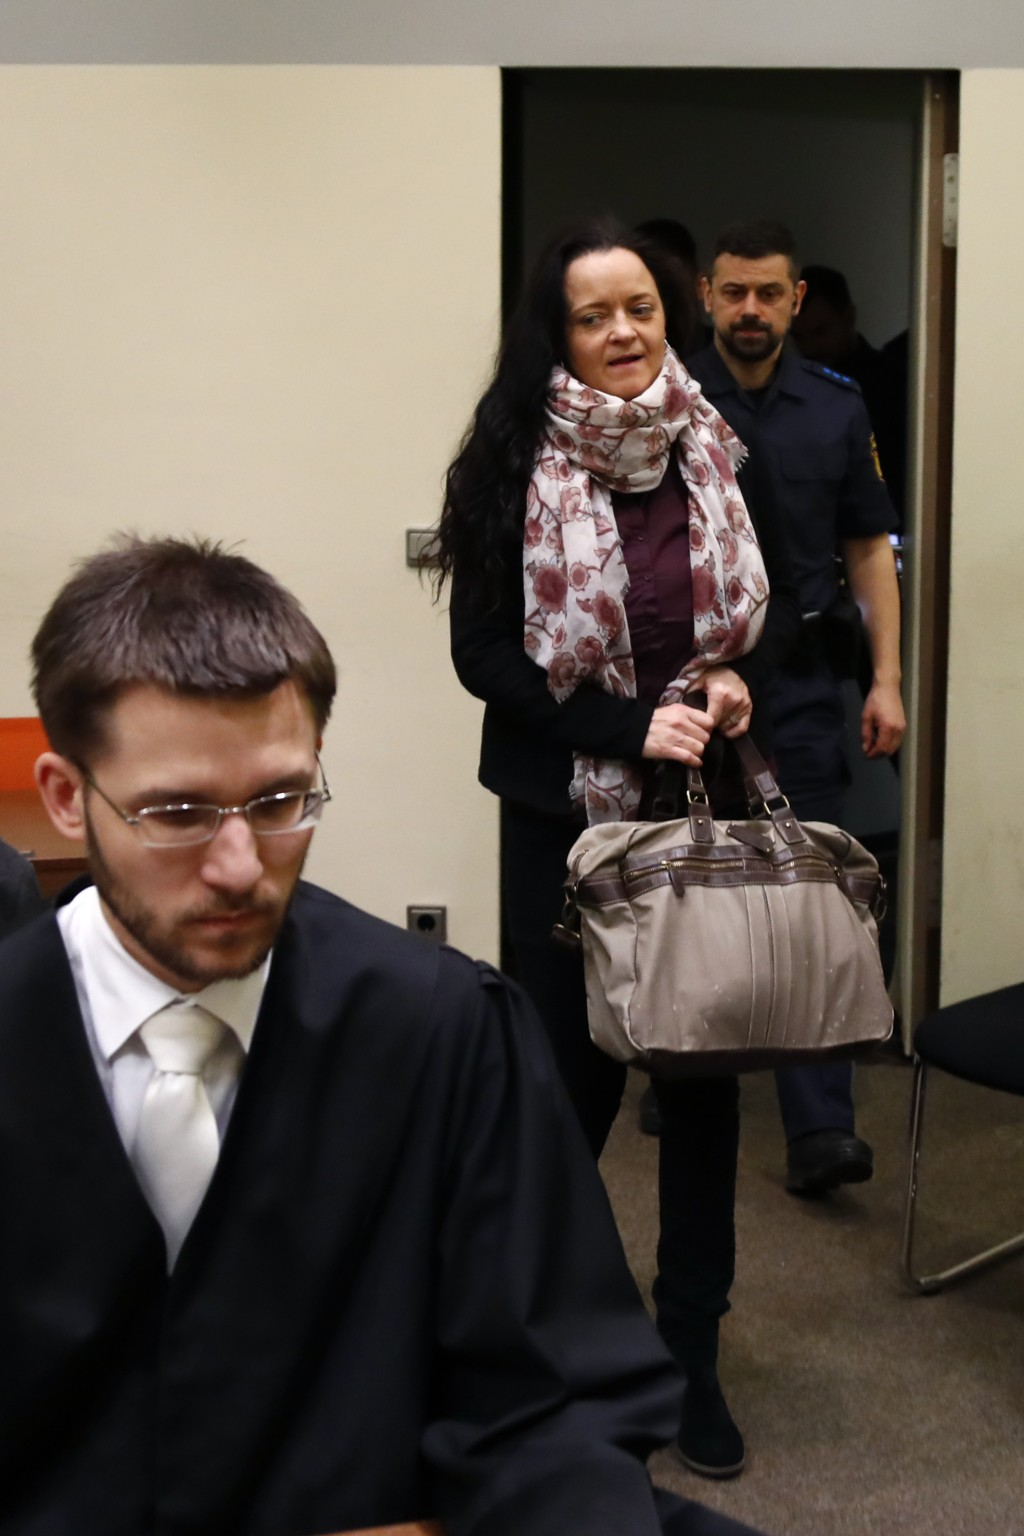 Terror suspect Beate Zschaepe arrives in a court room behind her lawyer Mathias Grasel in Munich, Germany, Tuesday, March 13, 2018. German prosecutors